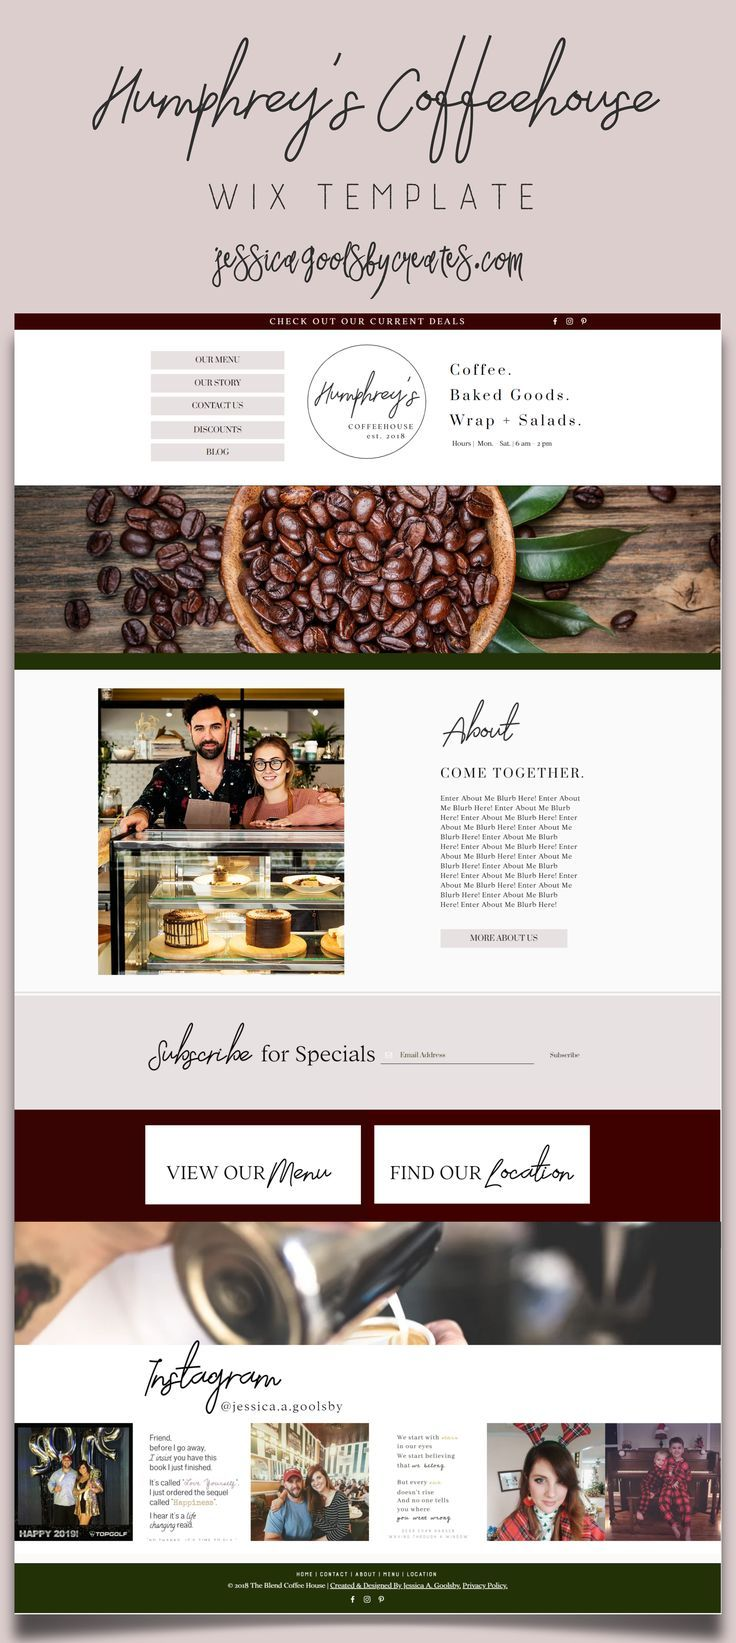 Humphreys Coffeehouse Bistro Coffee Shop Cafe Wix Website Template Wix Blog Blogging With Wix Wix Templates Wix Website Templates Wix Website Design